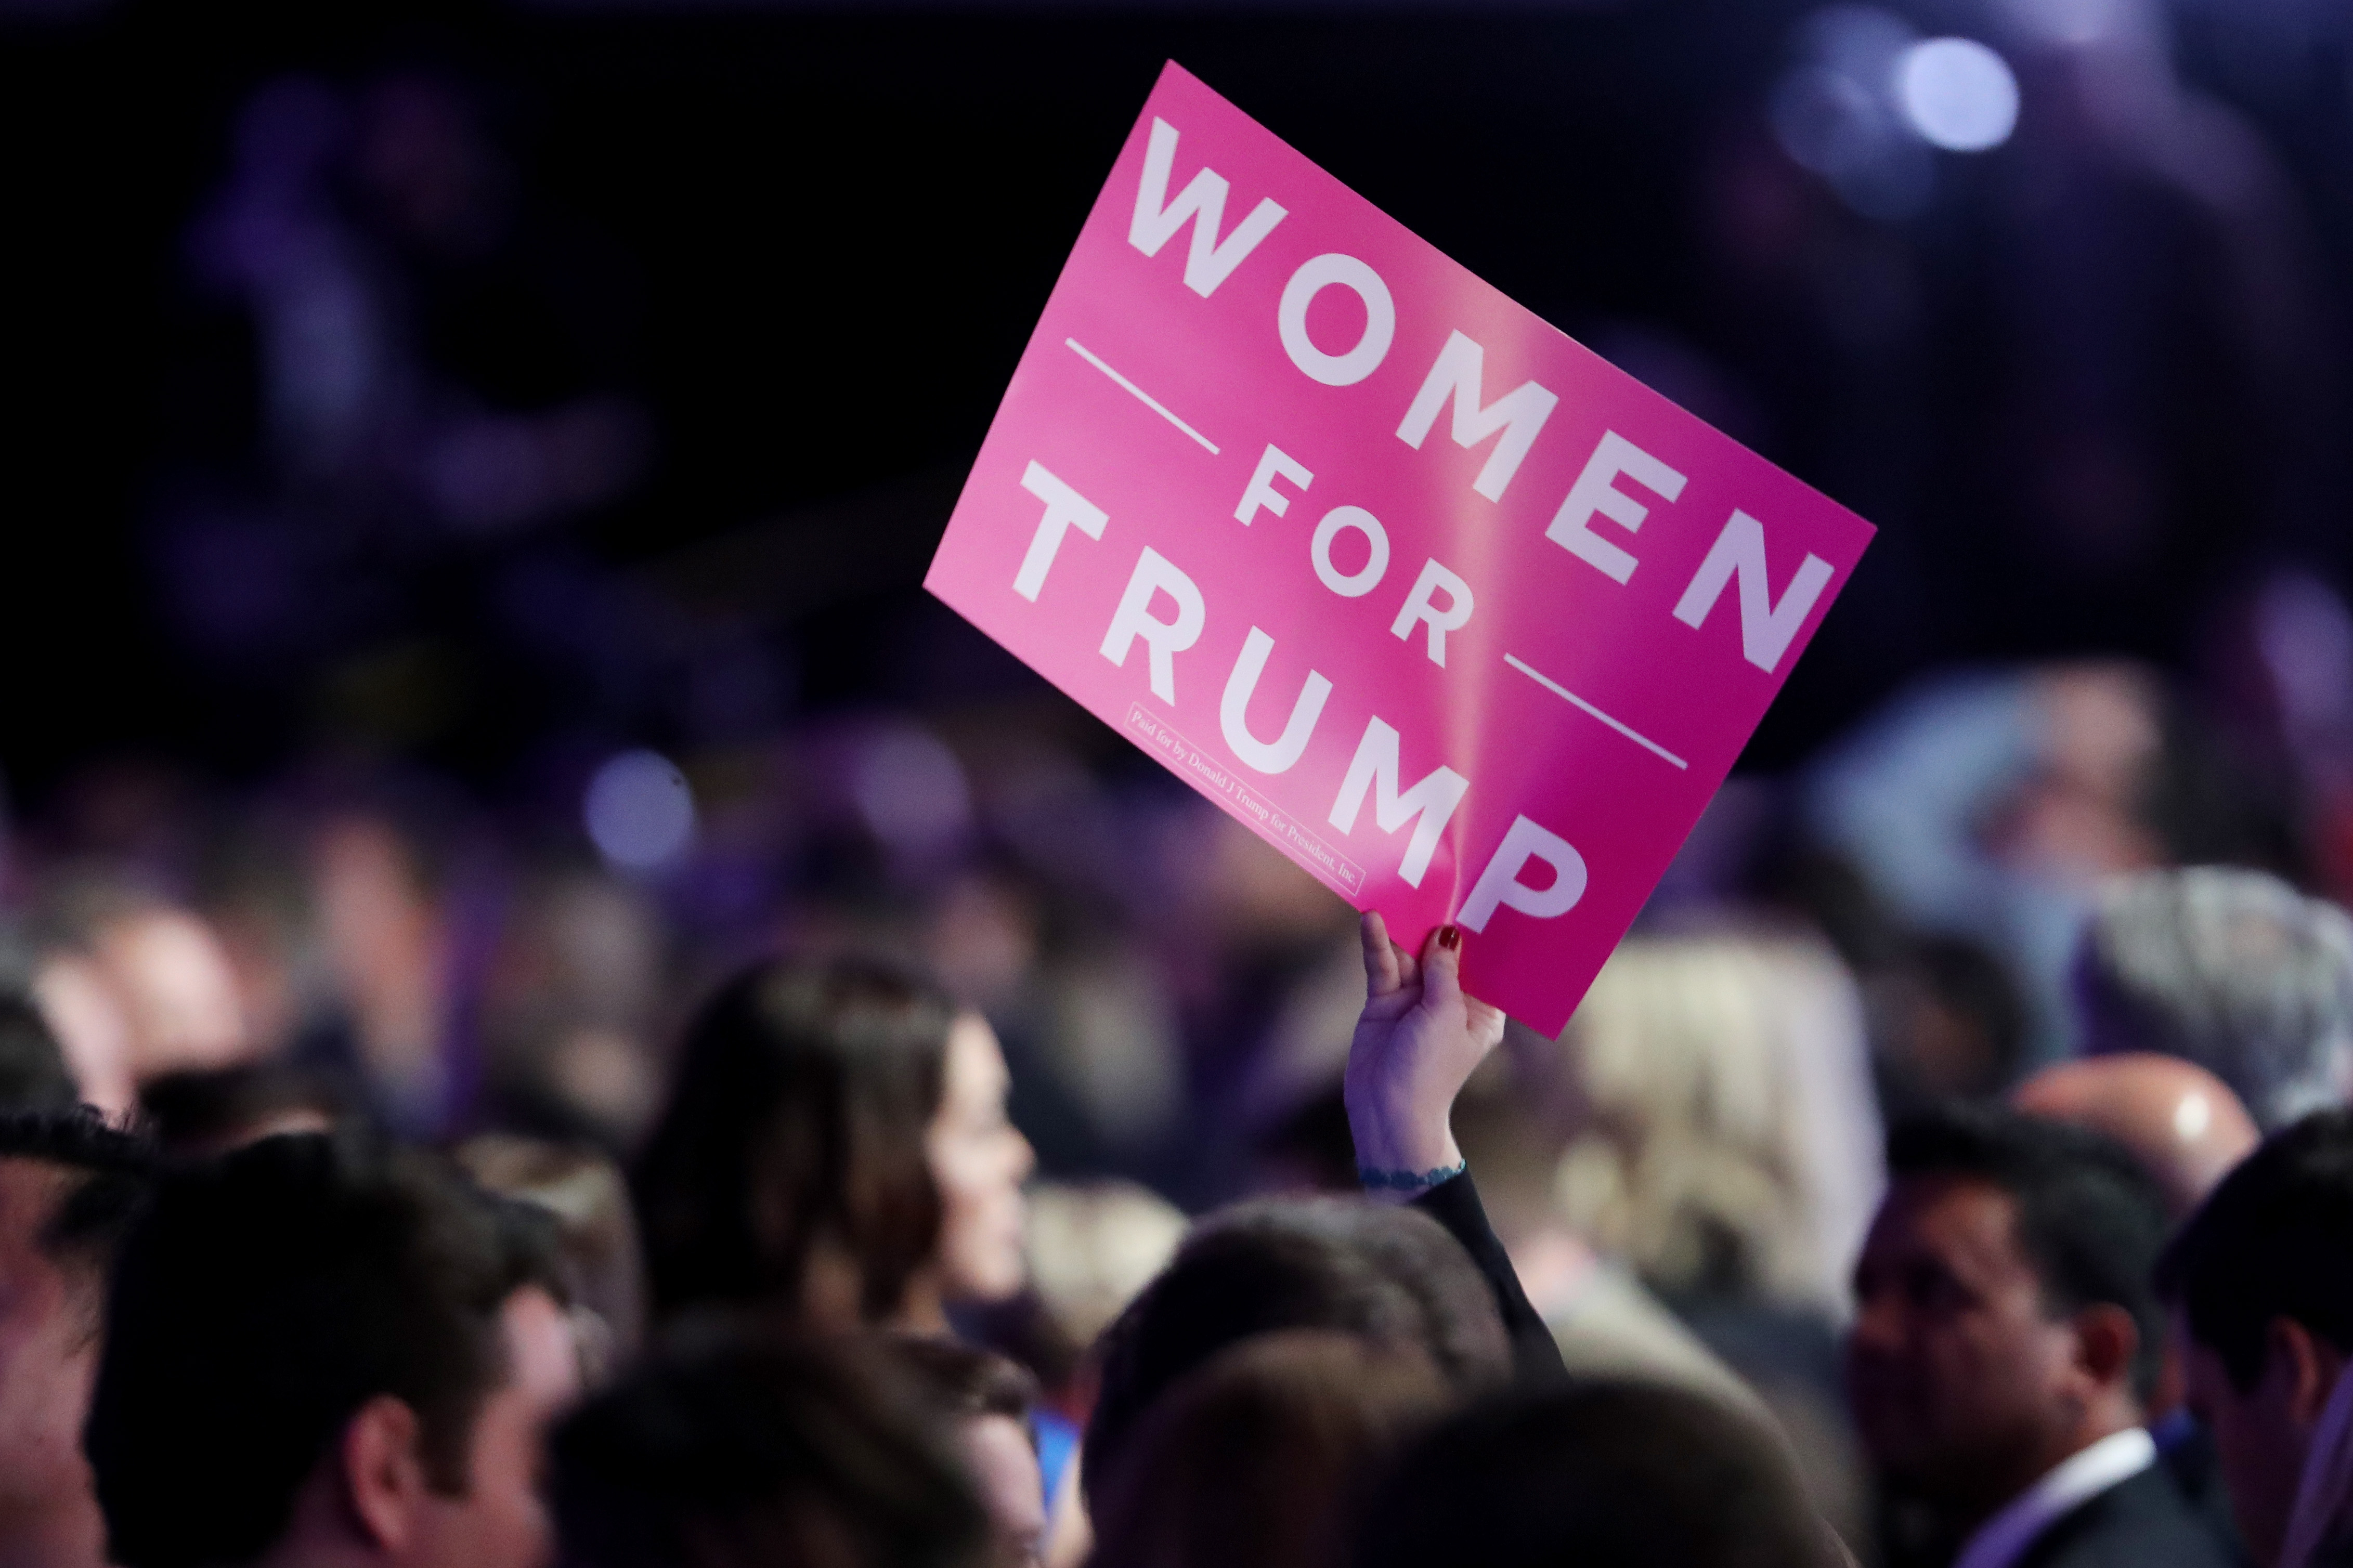 """A supporter of Donald Trump holds a """"Women For Trump"""" sign at the election night event at the New York Hilton Midtown on November 8, 2016."""